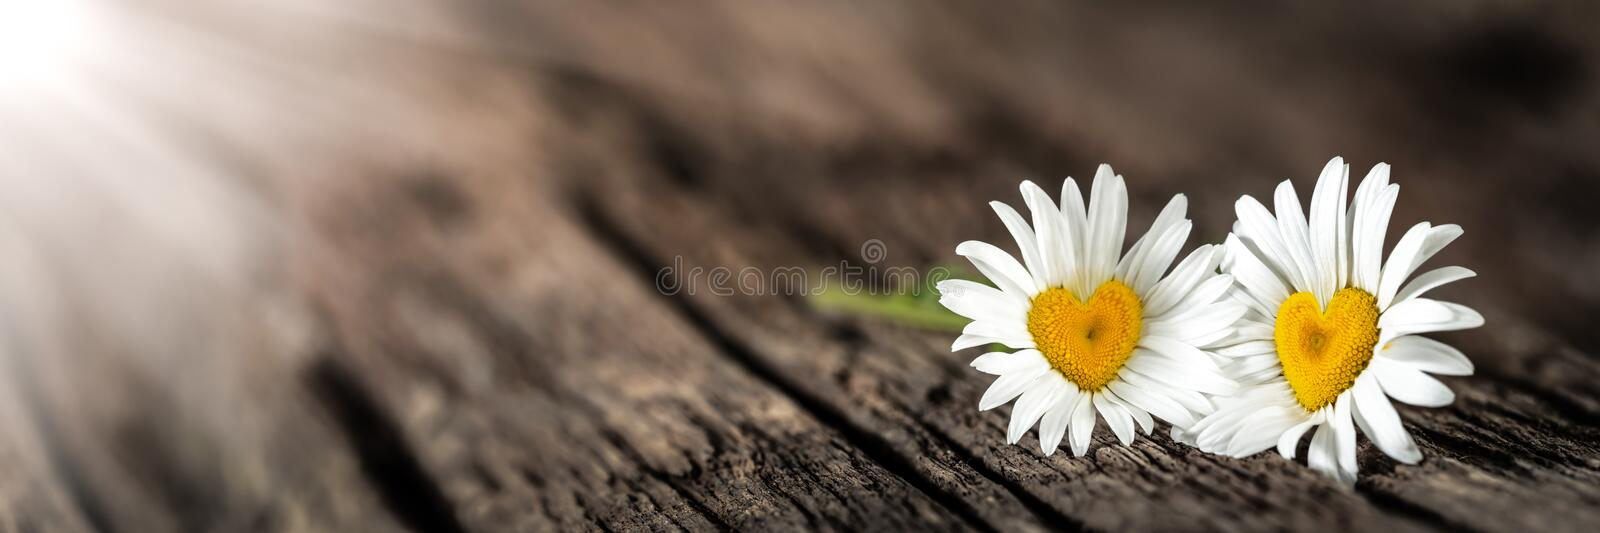 Two Daisies With Heart Shaped Centers stock photos